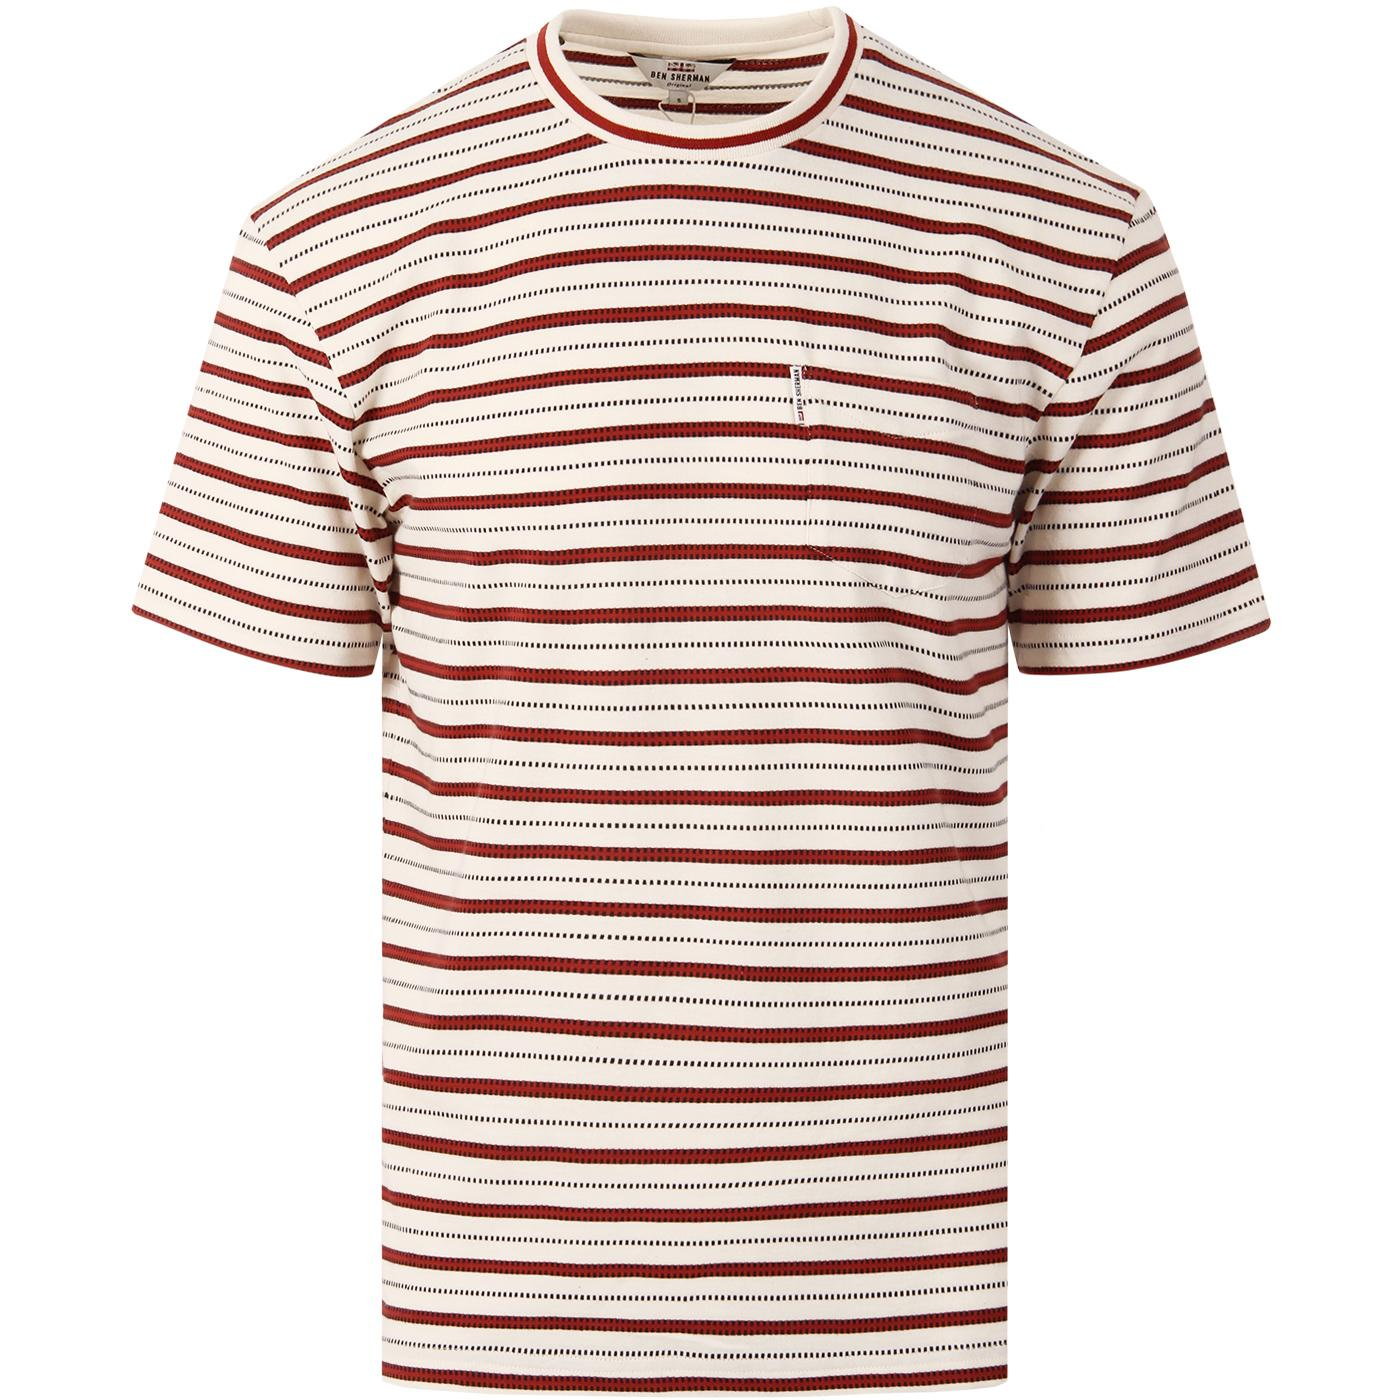 BEN SHERMAN Men's Retro 60s Multi Stripe T-Shirt